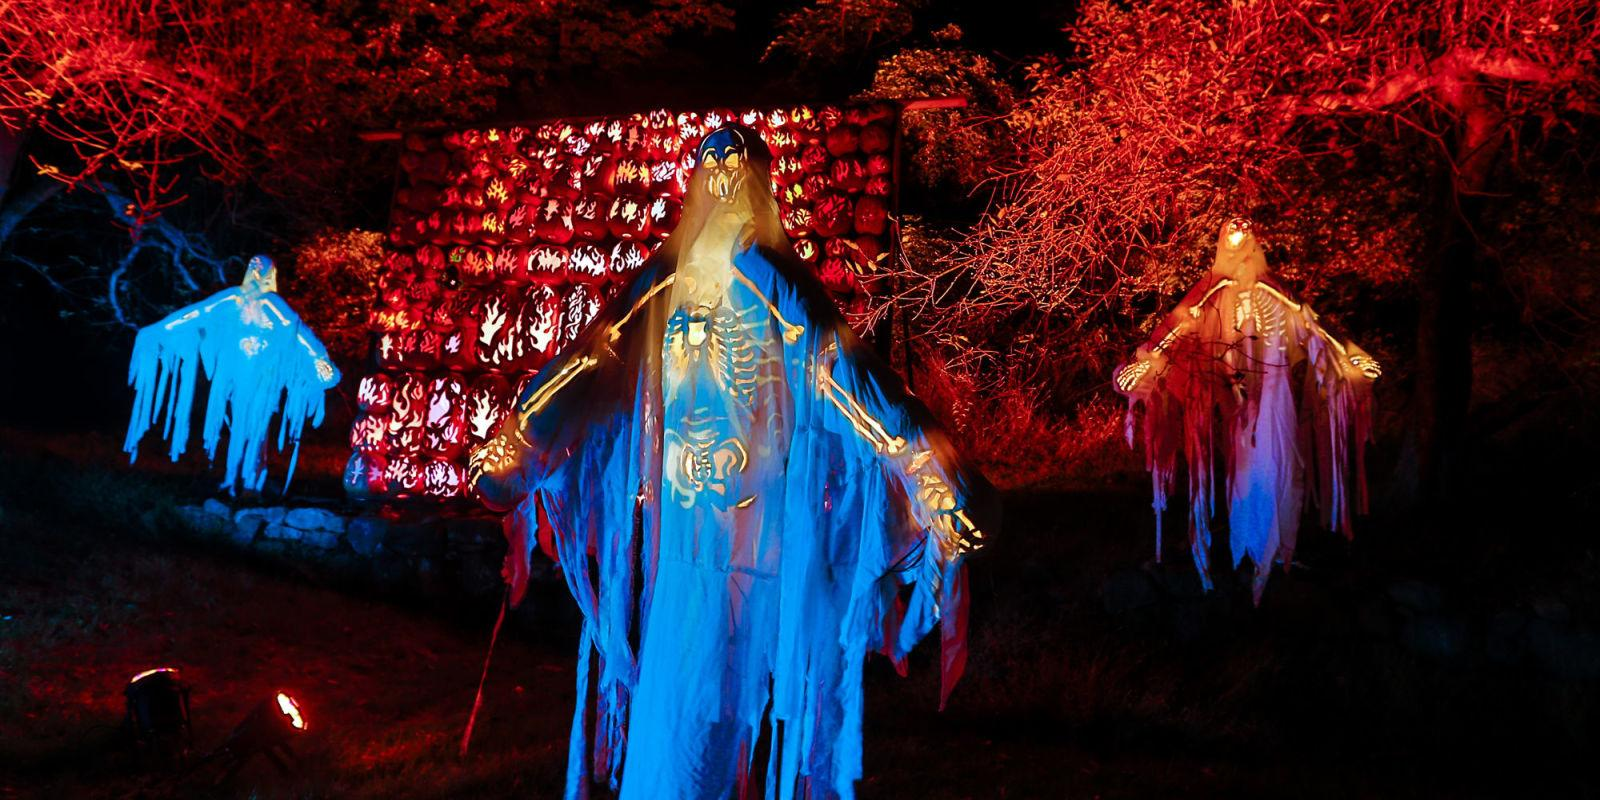 9 Illuminating Jack-o-Lantern Festivals to Visit This October